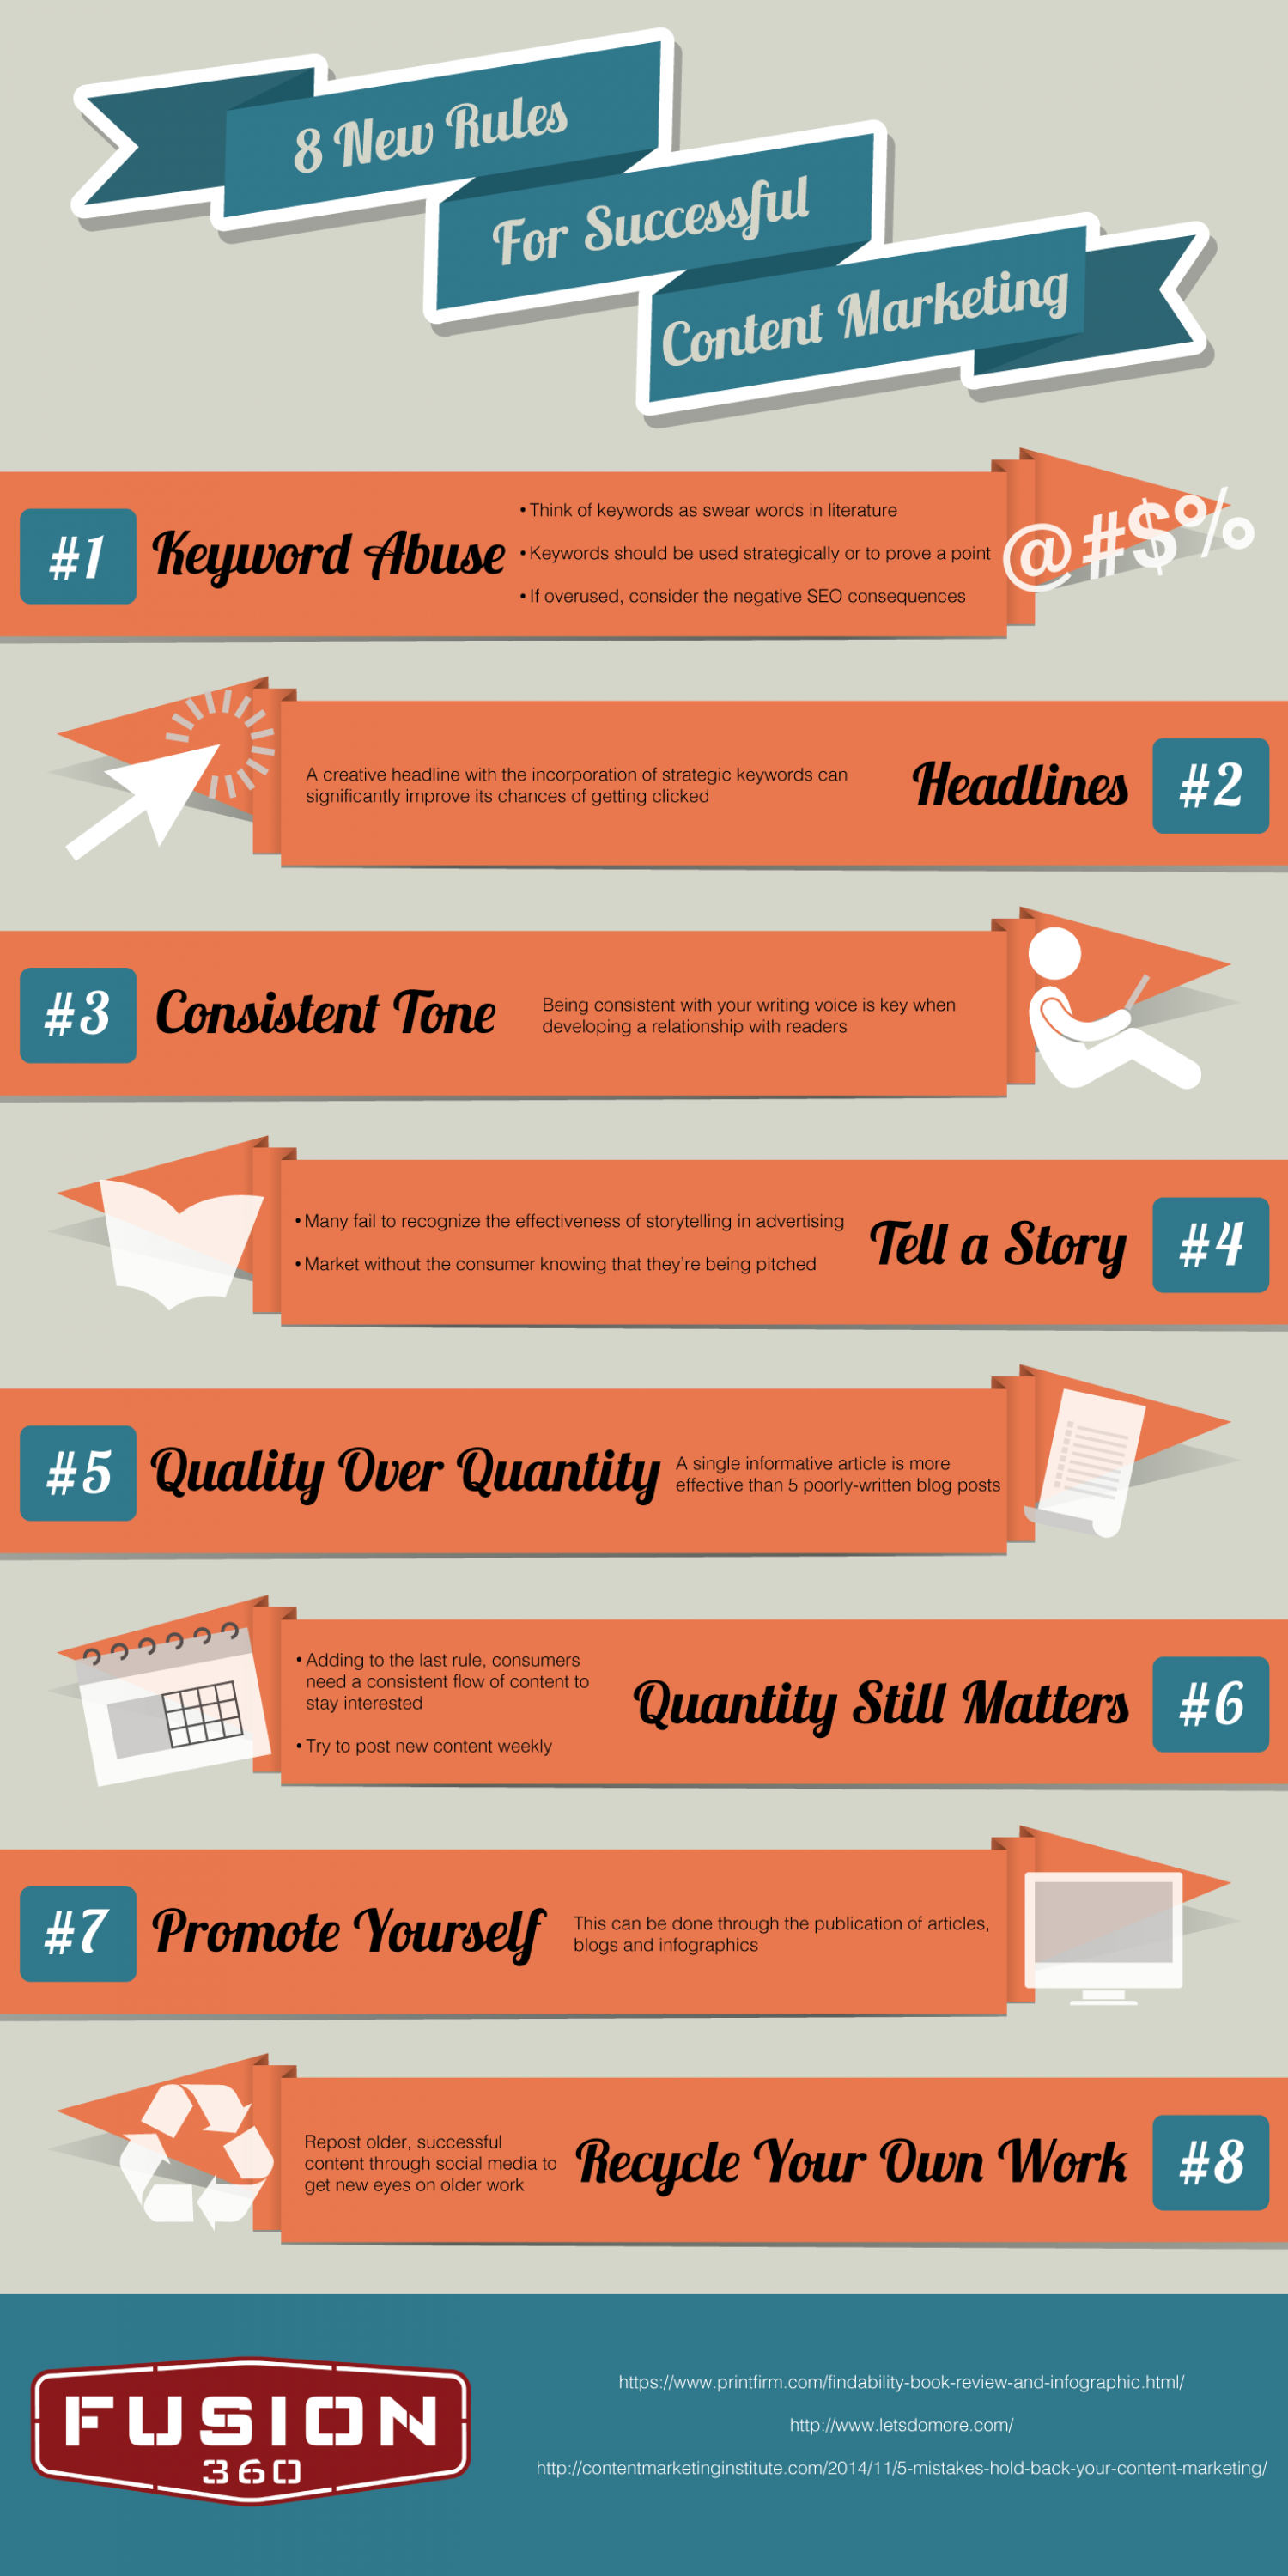 8 New Rules for Successful Content Marketing Infographic